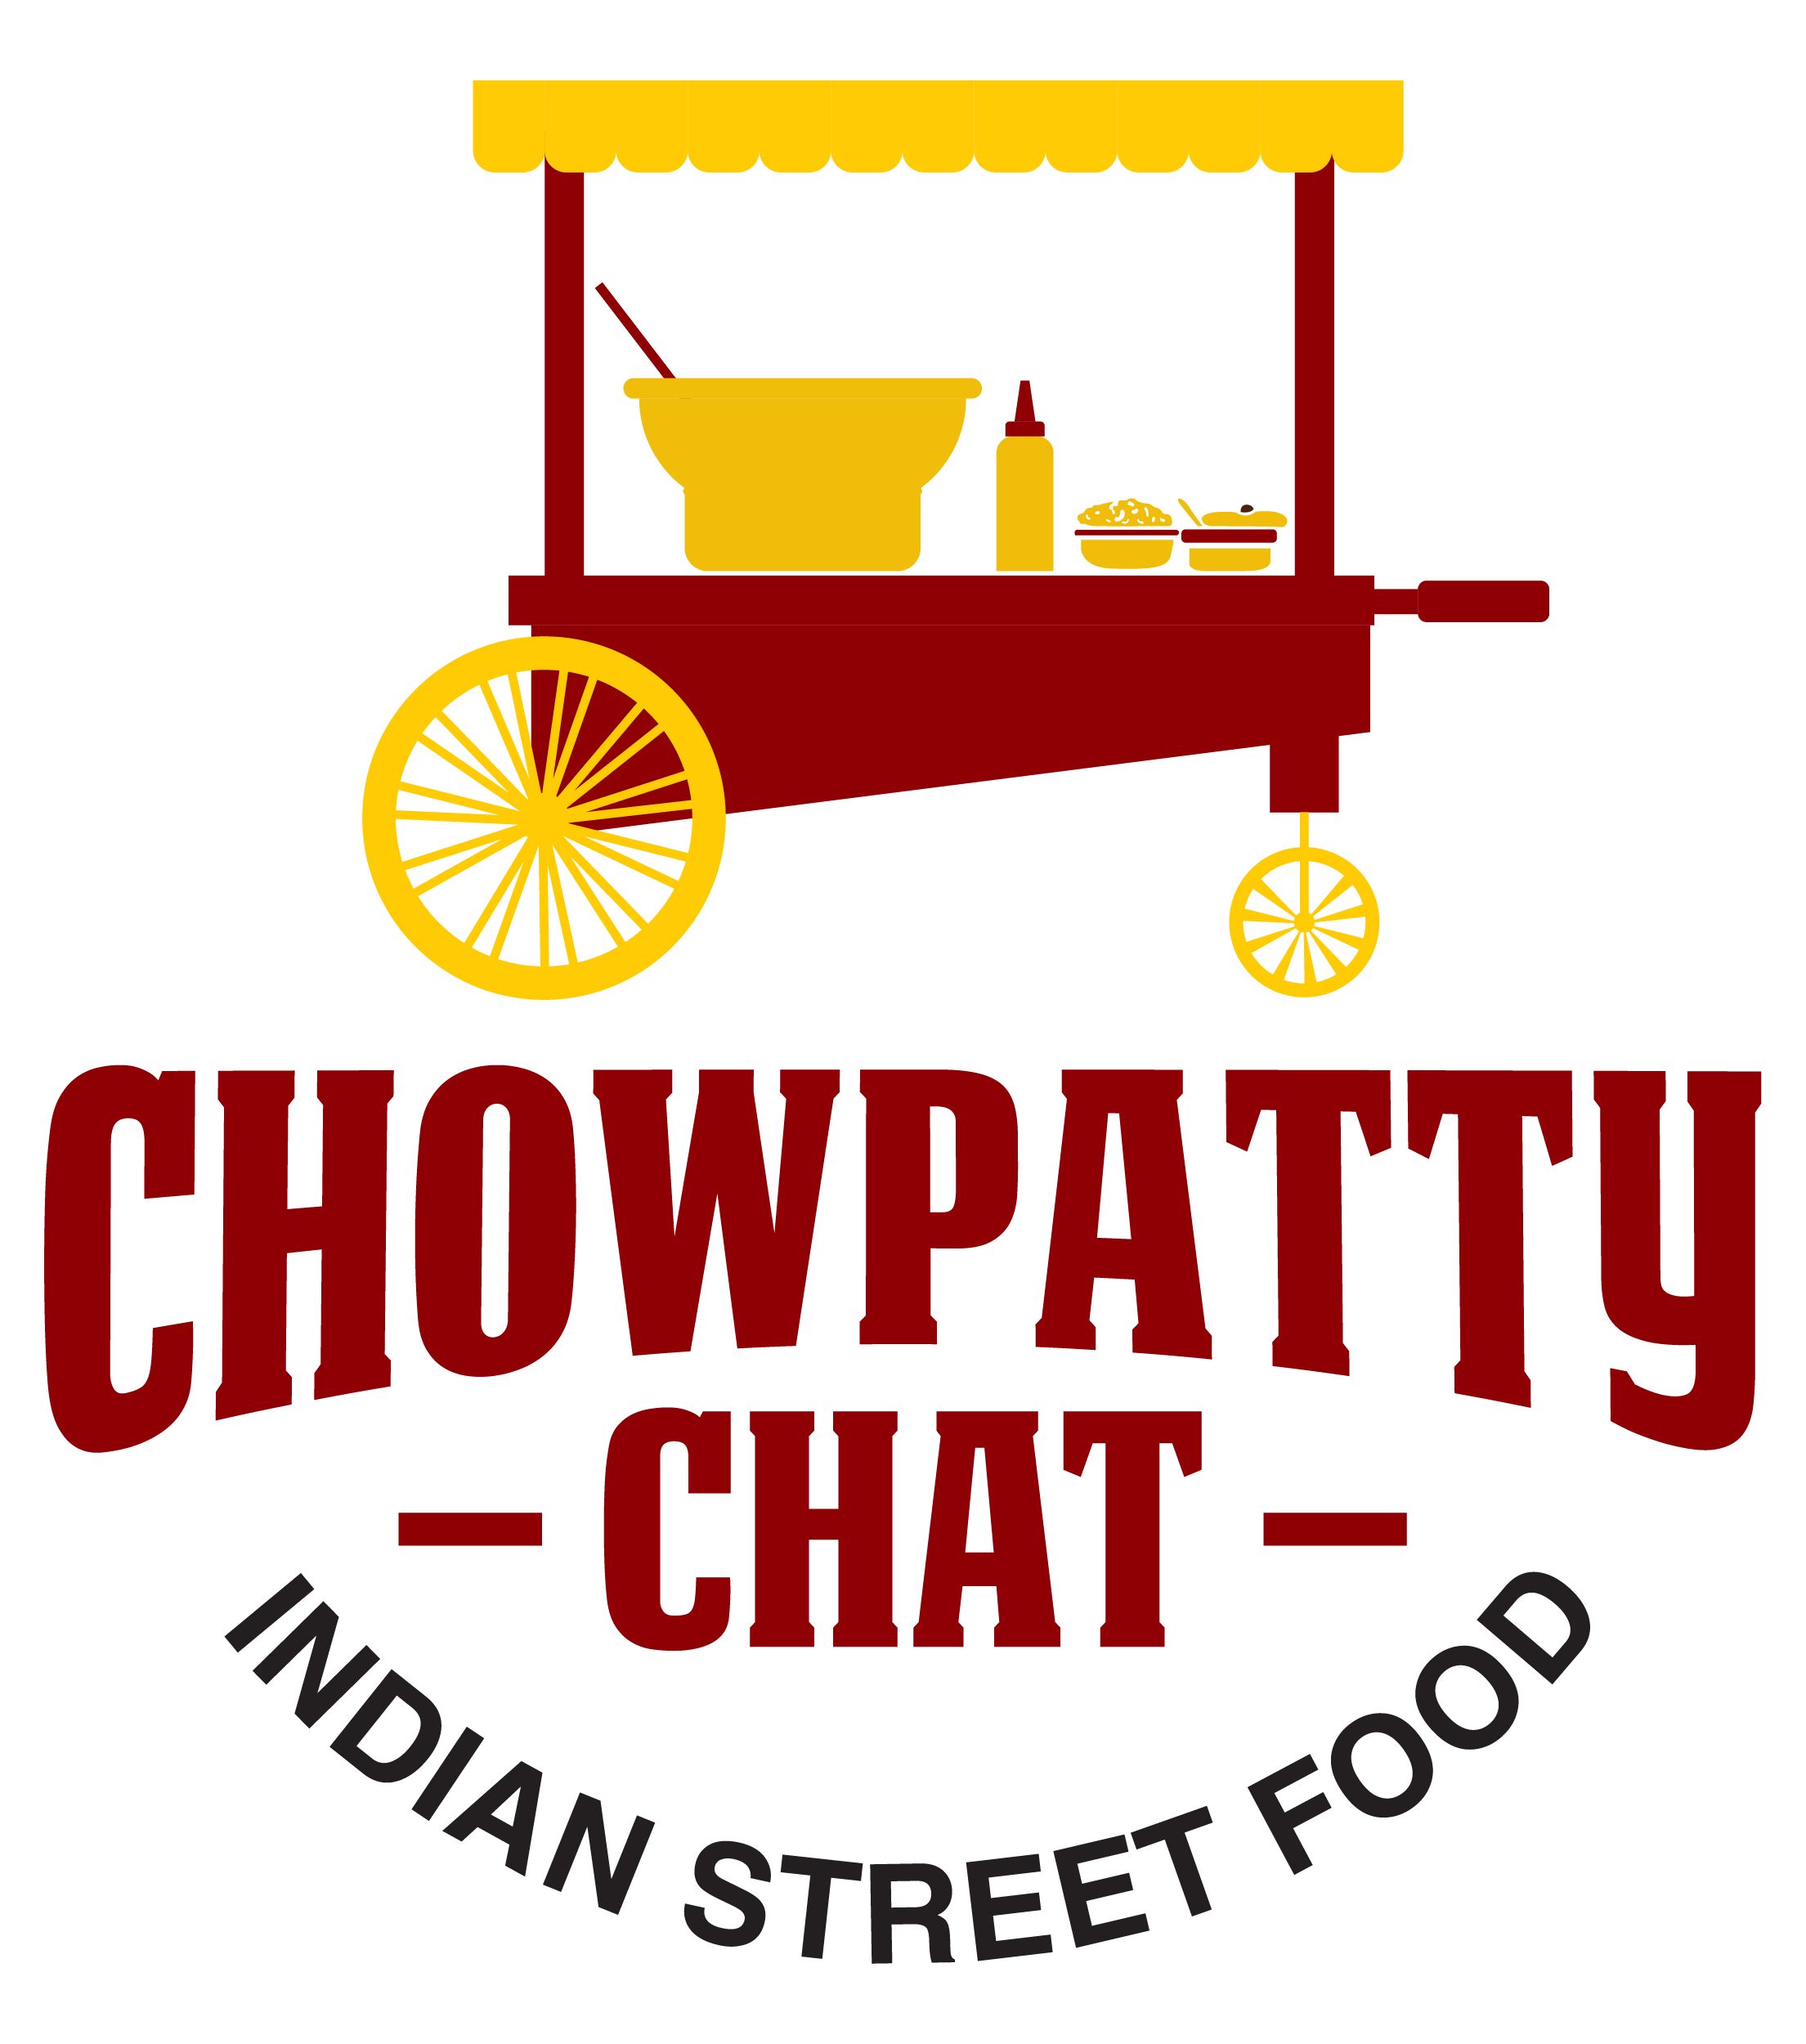 Chowpatty Chat